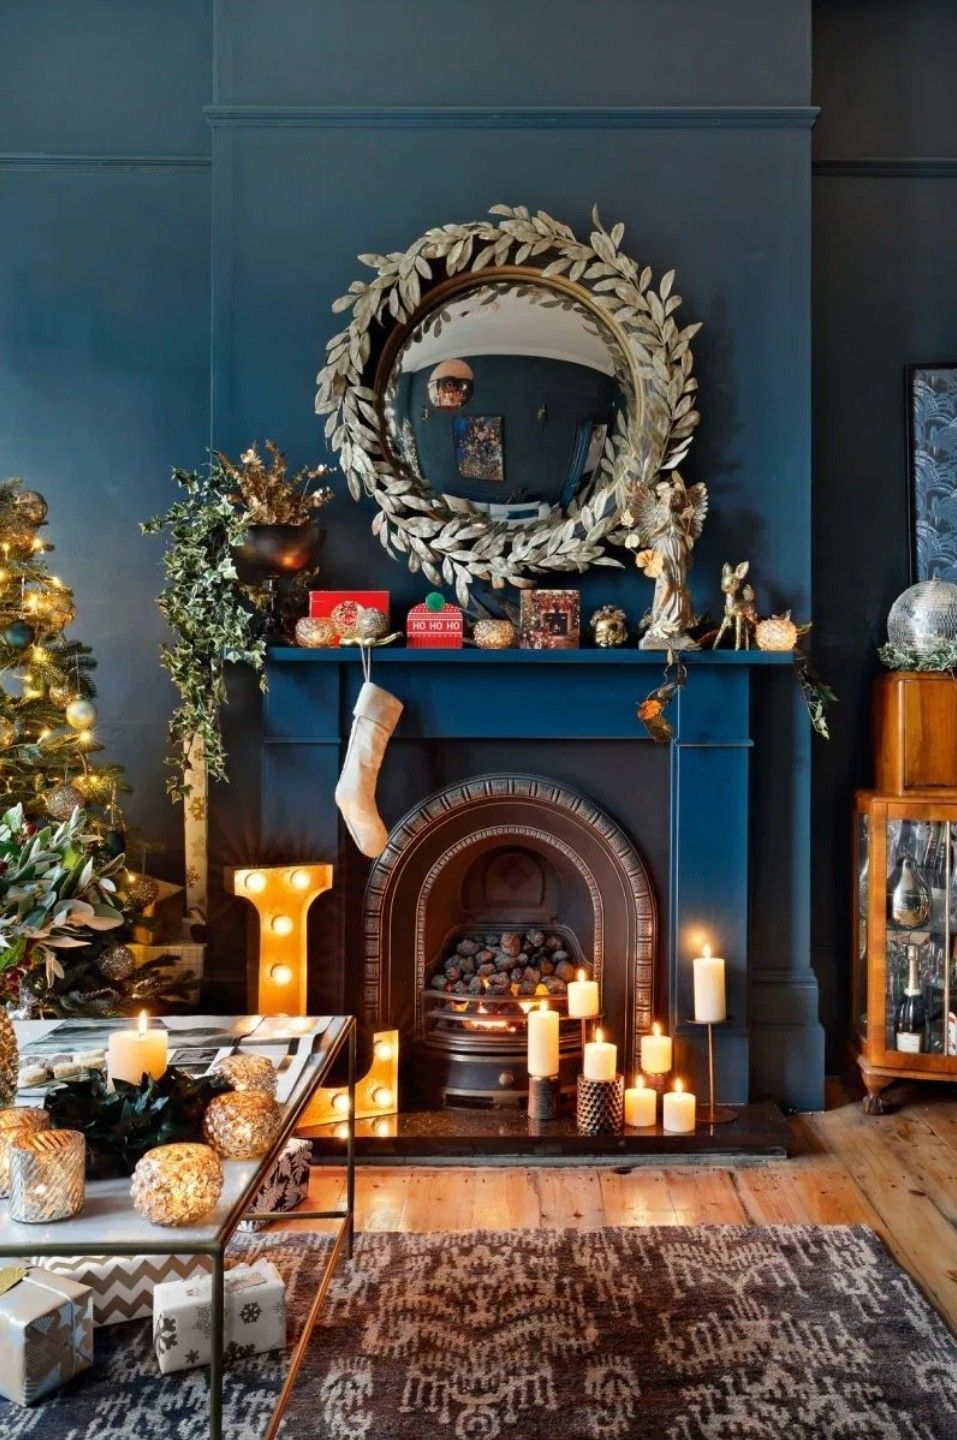 Pin by Cassie Lucas on Dream House in 2020 Christmas